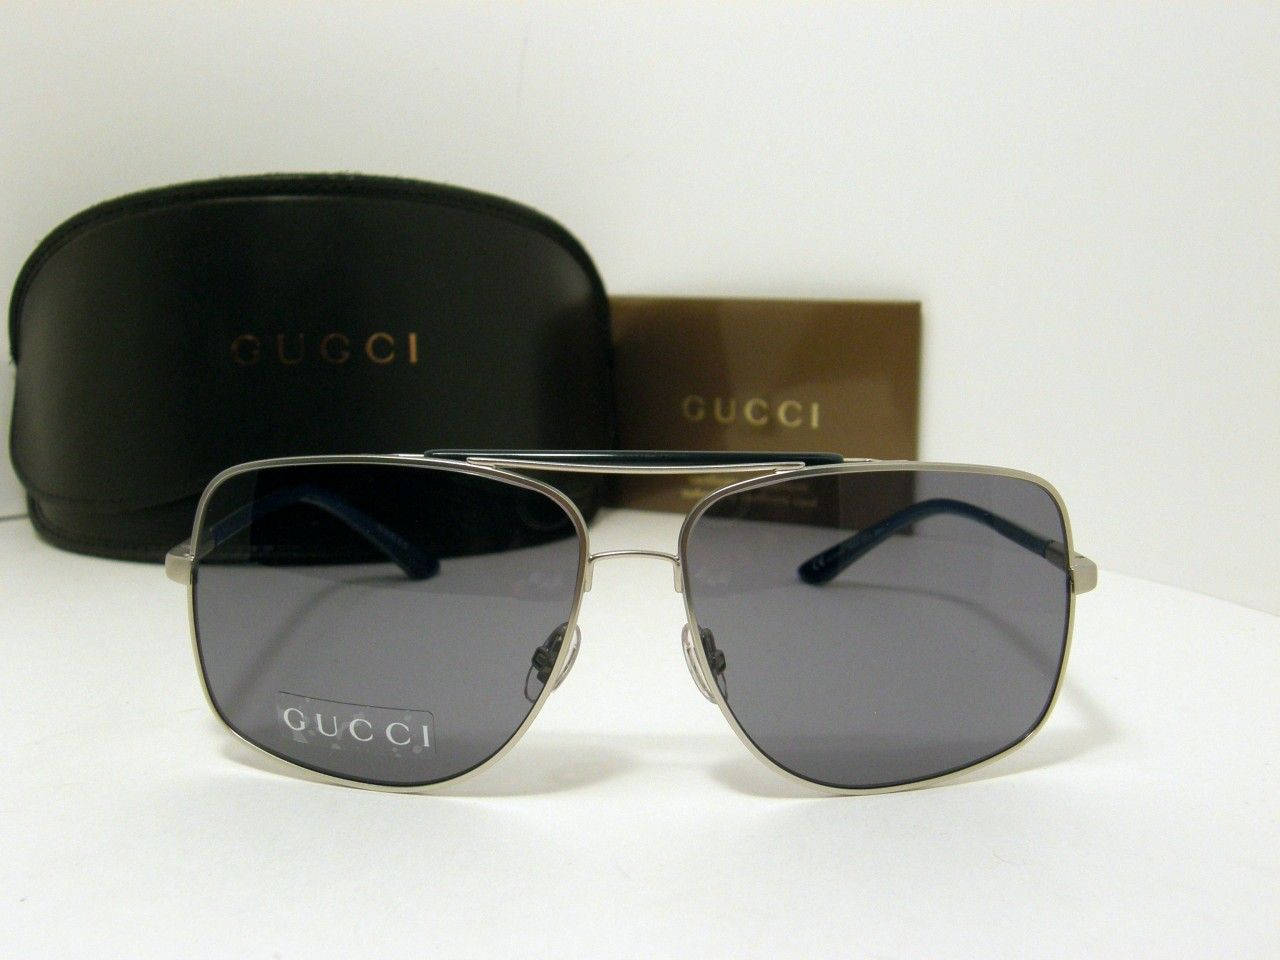 75c9bce9991 Gucci Sunglasses for Men